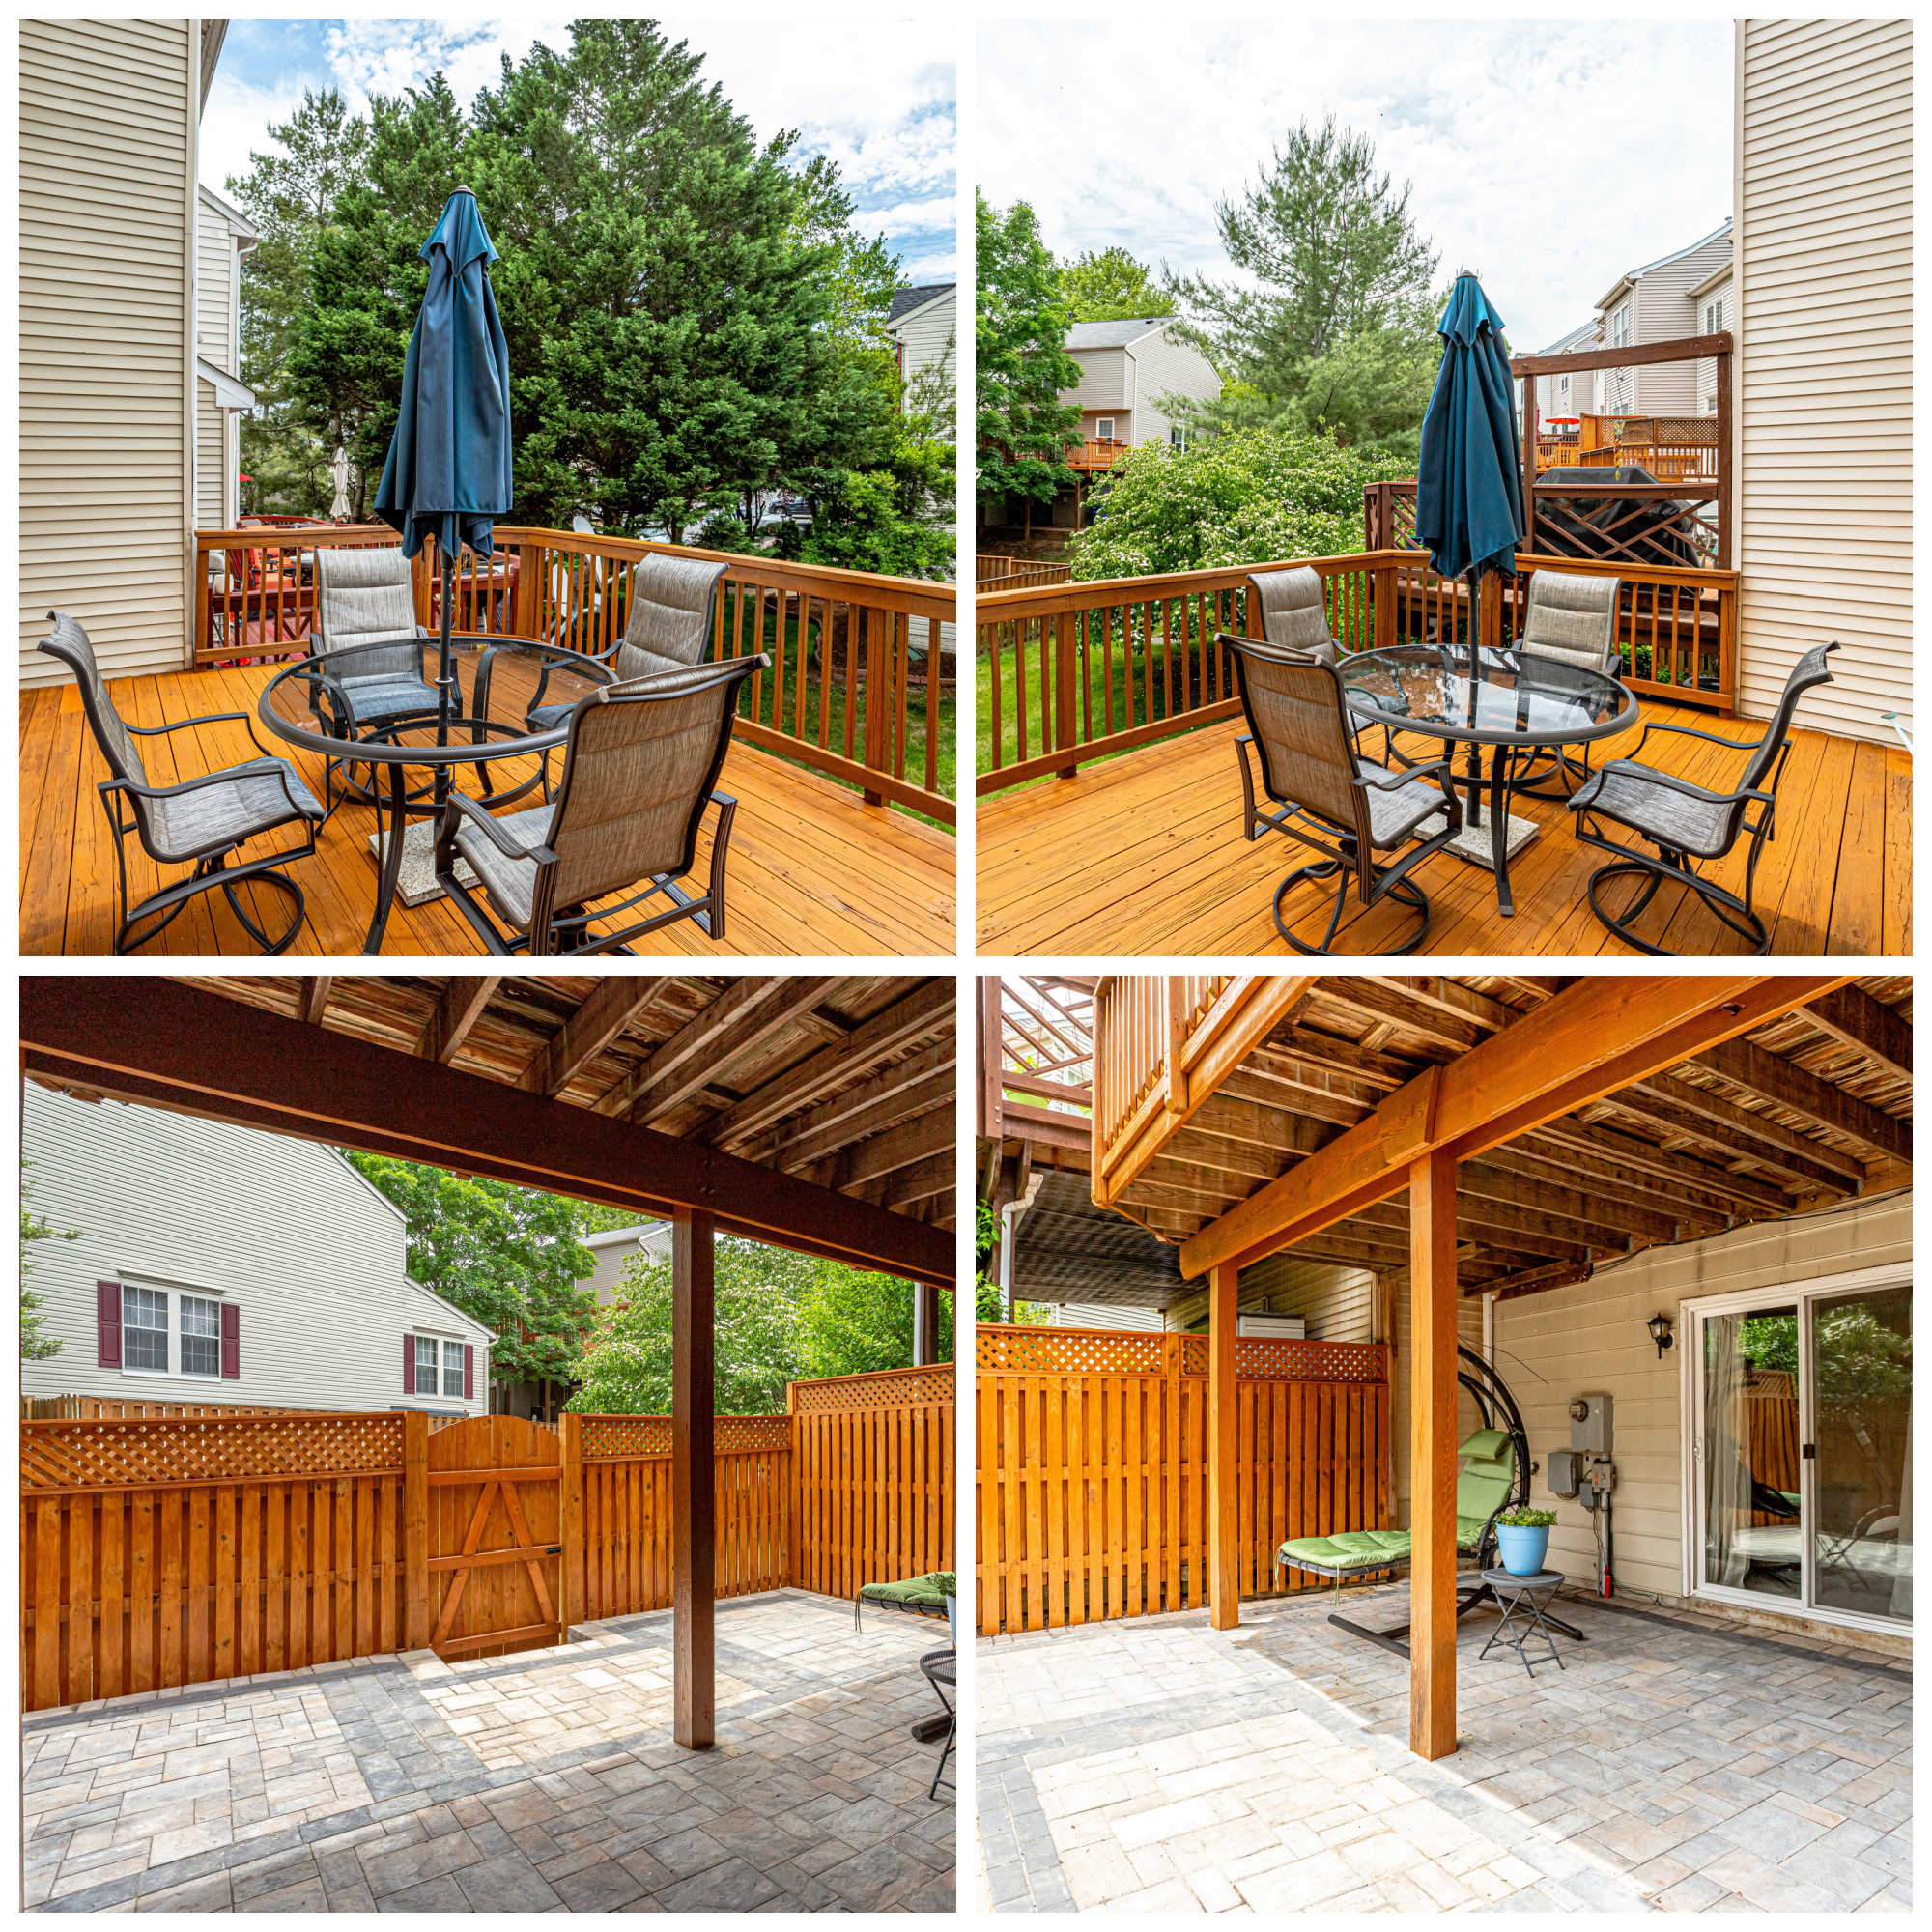 19886 Upland Ter, Ashburn- Deck and Patio